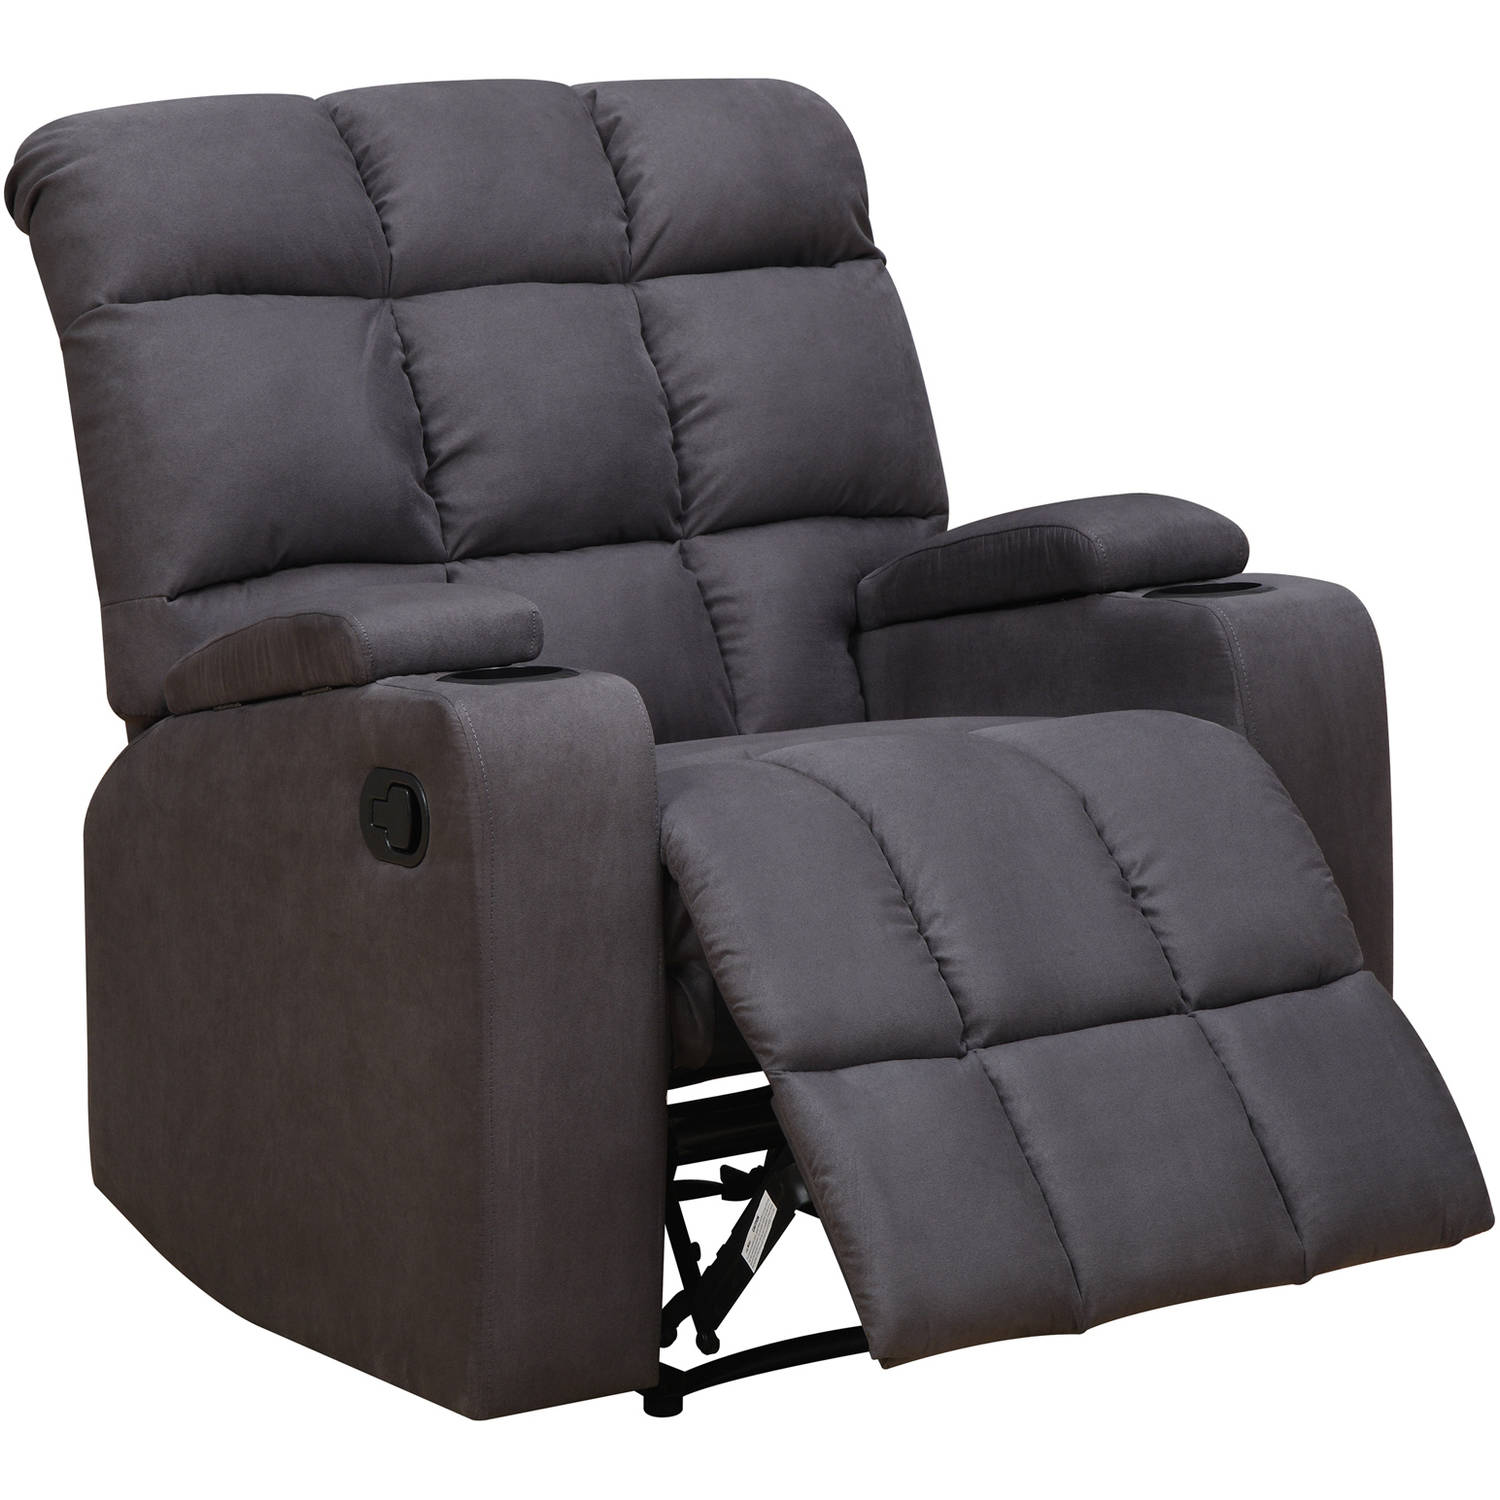 ProLounger Storage Arm Wall Hugger Microfiber Recliner Multiple Colors Set of 2 - Walmart.com  sc 1 st  Walmart & ProLounger Storage Arm Wall Hugger Microfiber Recliner Multiple ... islam-shia.org